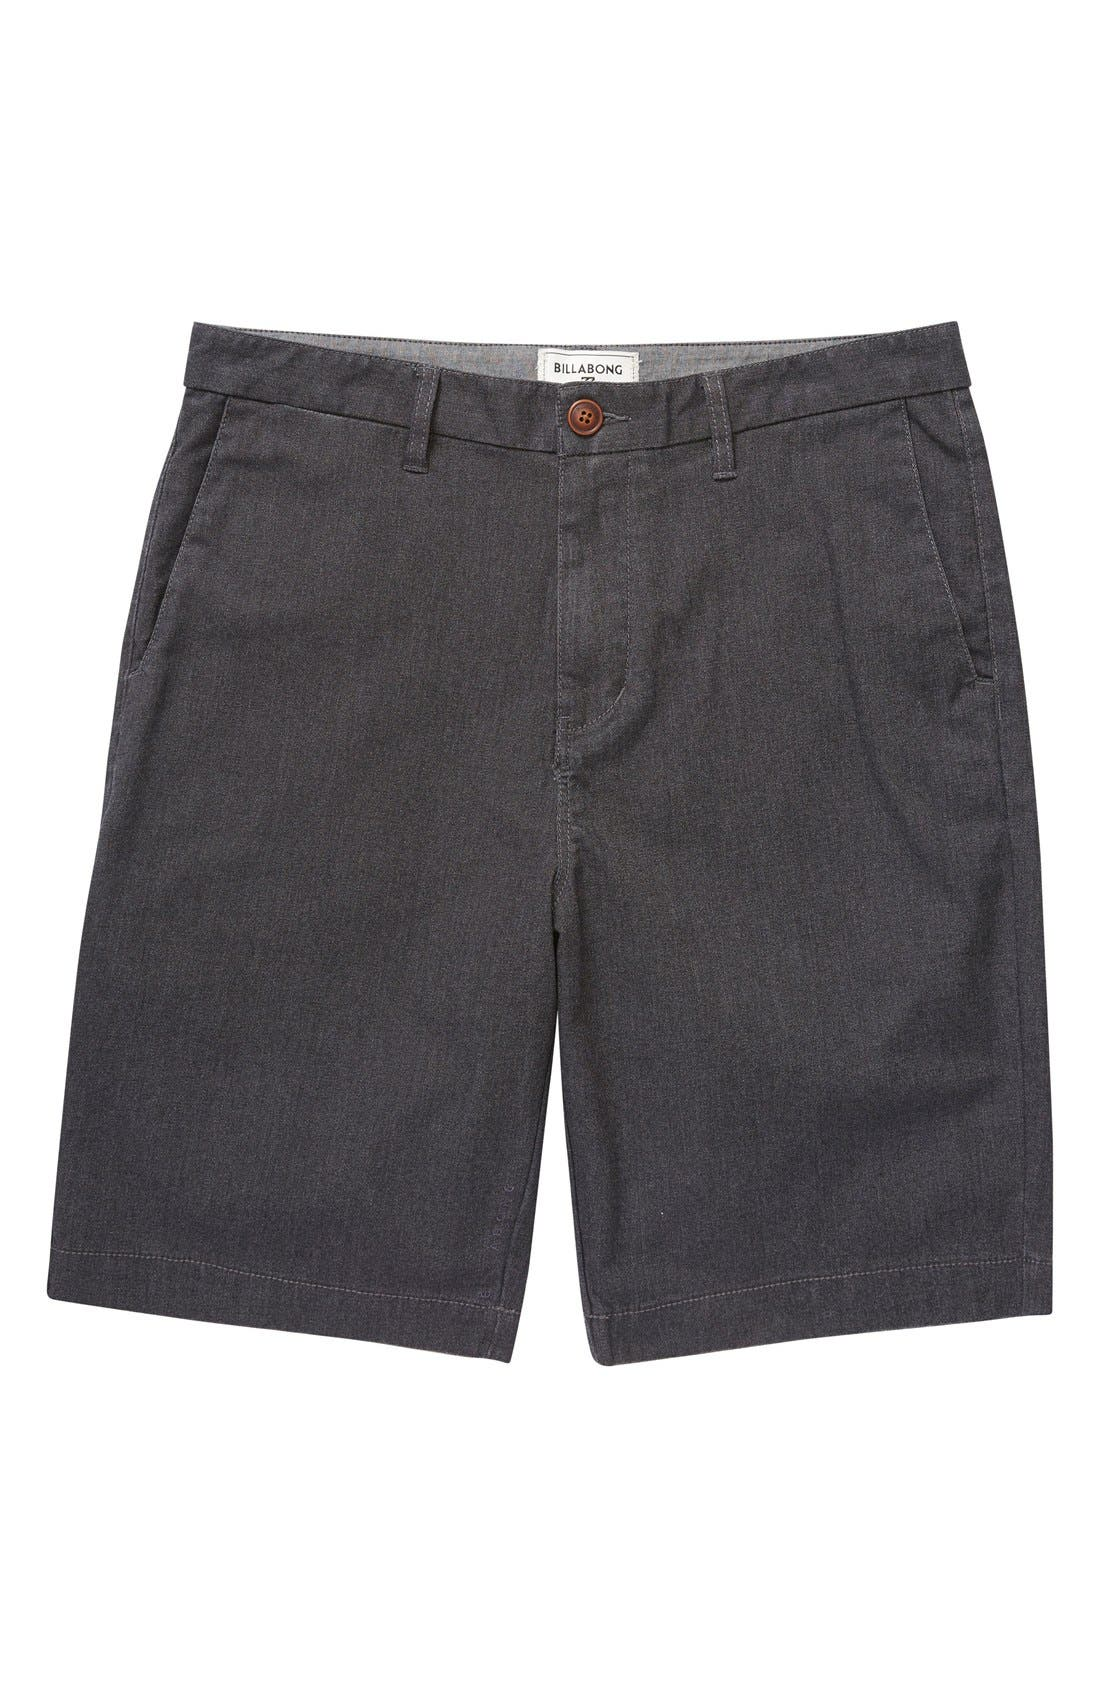 'Carter' Cotton Twill Shorts,                         Main,                         color,